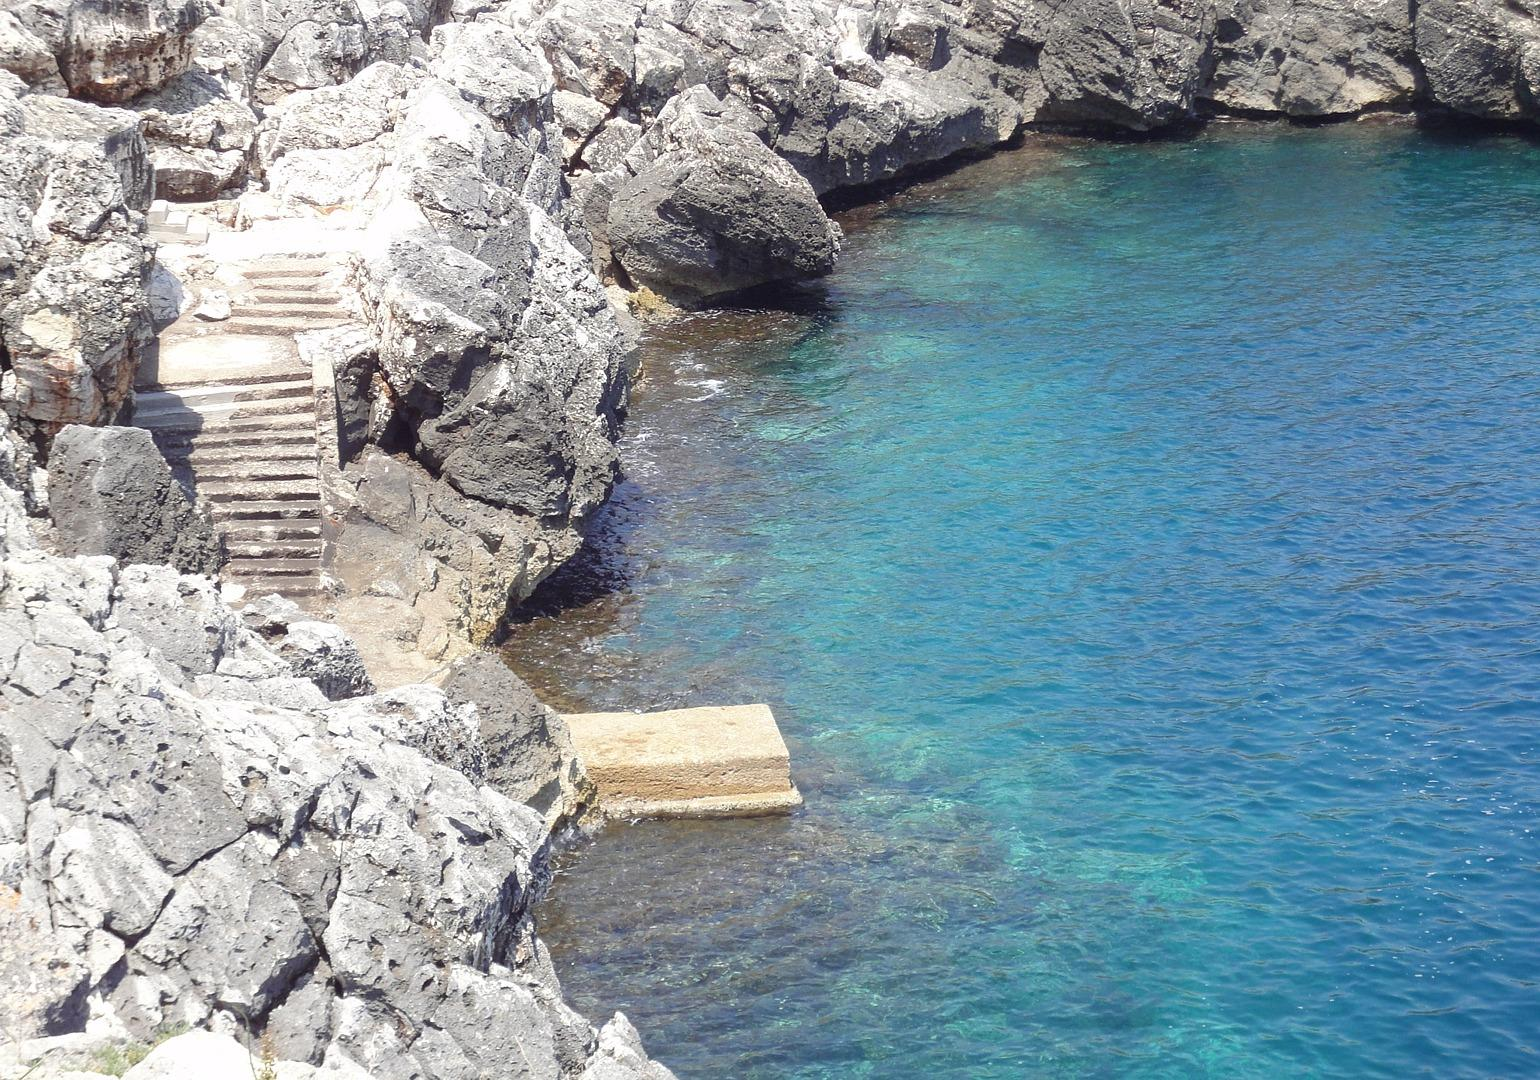 comfortable private rock cove with platform and stairs to enter the water